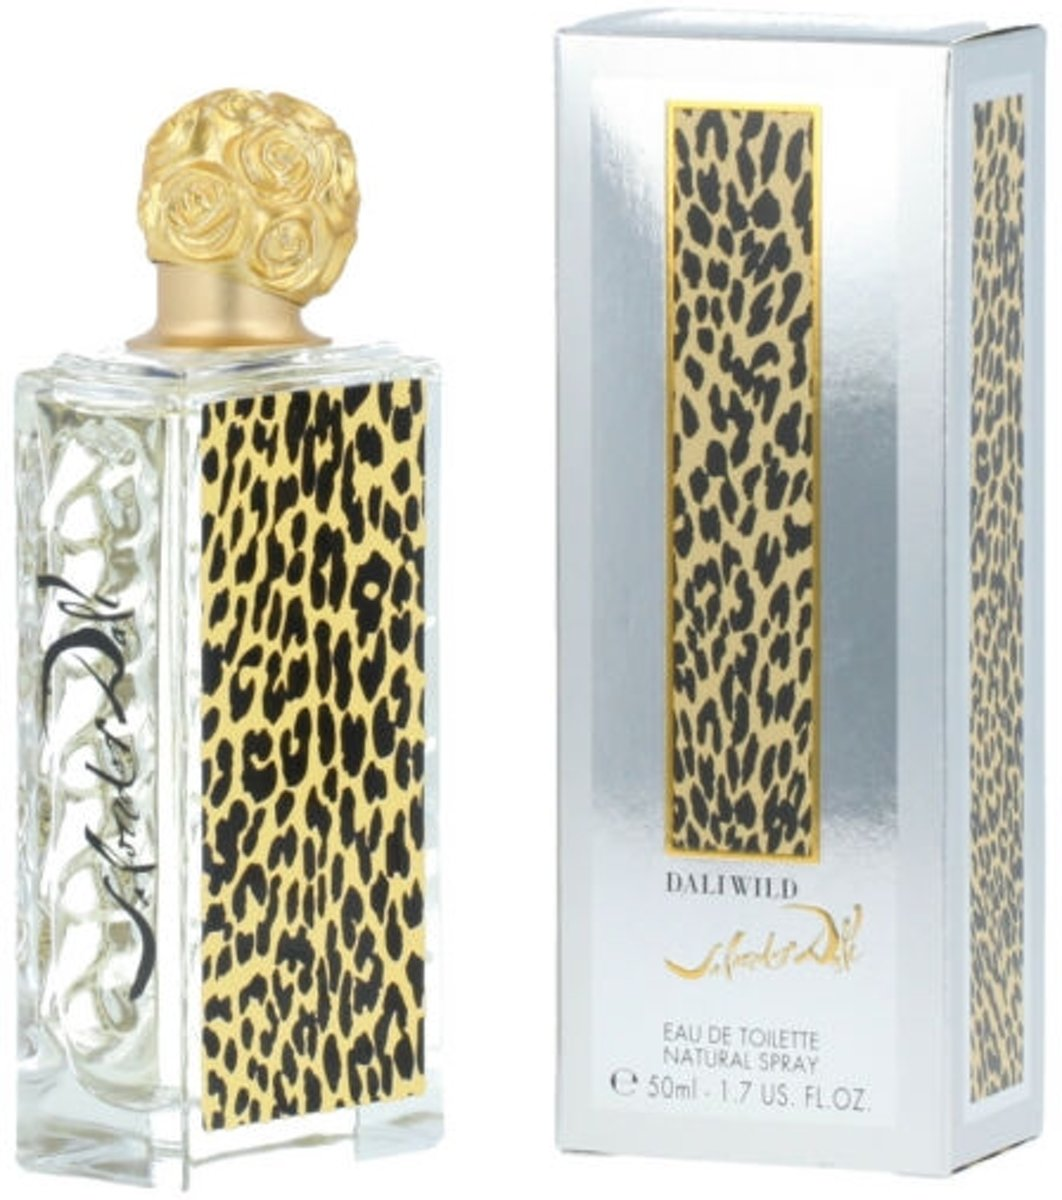 Salvador Dali Dalí Wild W EDT 50ml